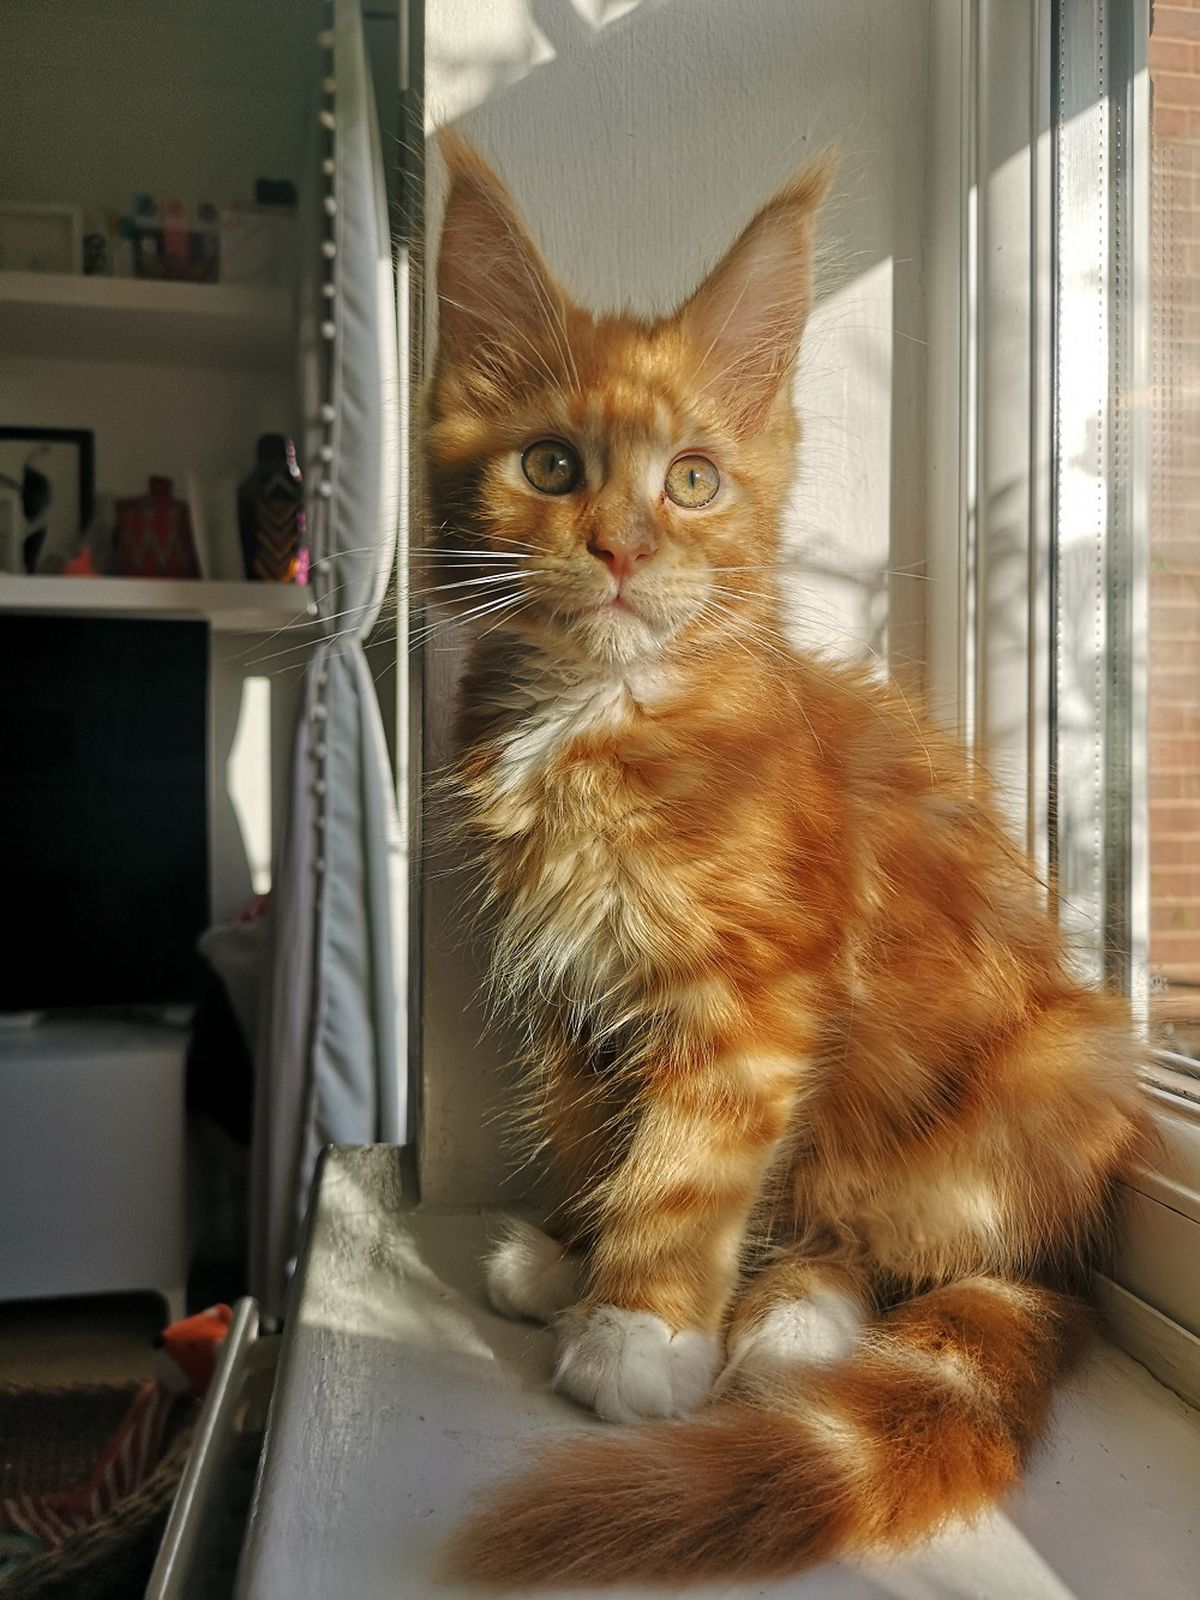 Pintxo the cat, who won the Ginger Cat competition